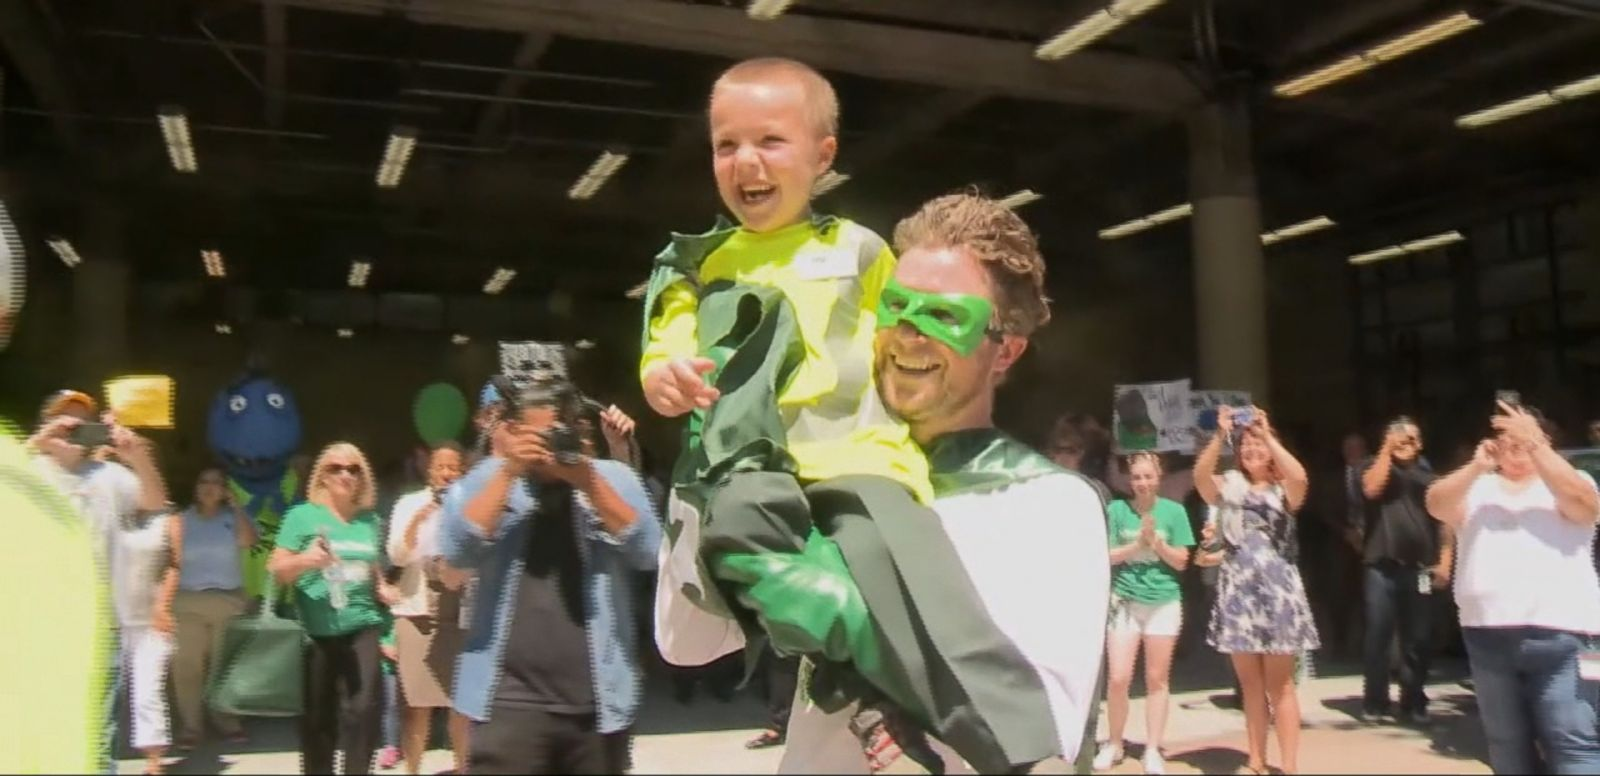 VIDEO: The Make-A-Wish Foundation made Ethan Dean's wish come true.